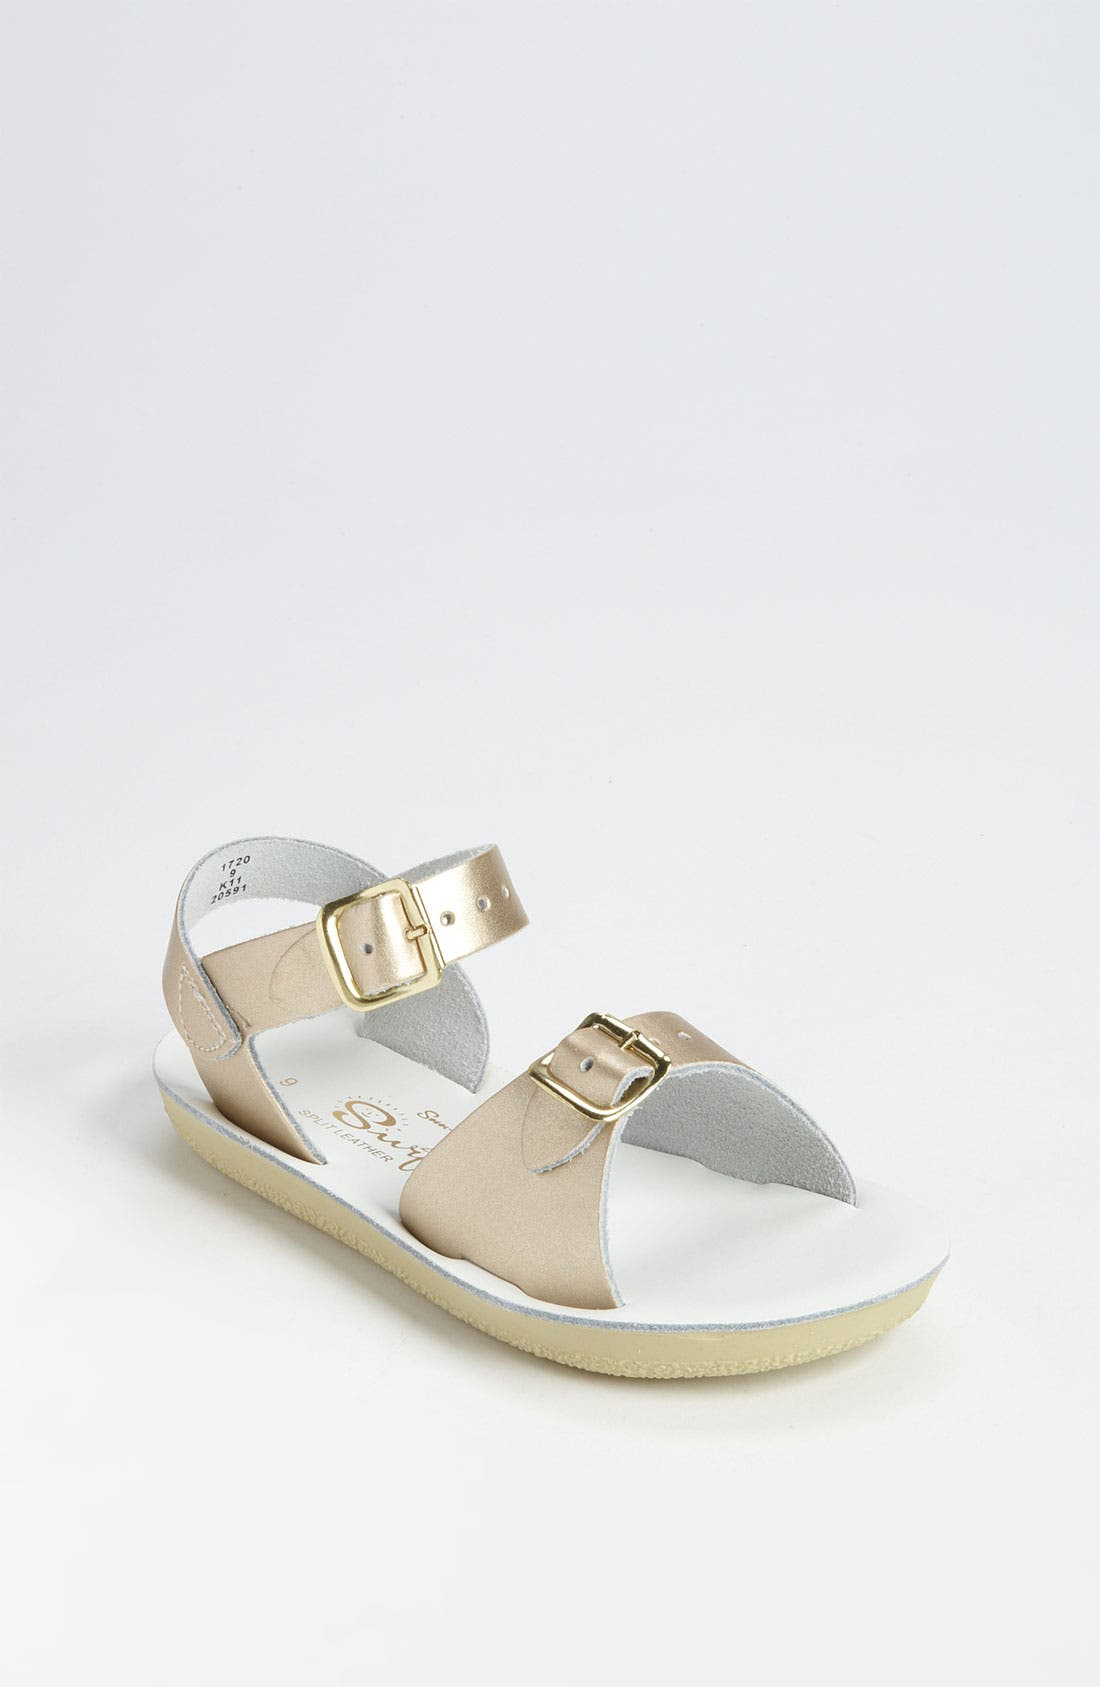 Salt Water Sandals by Hoy 'Surfer' Sandal (Baby, Walker, Toddler & Little Kid)